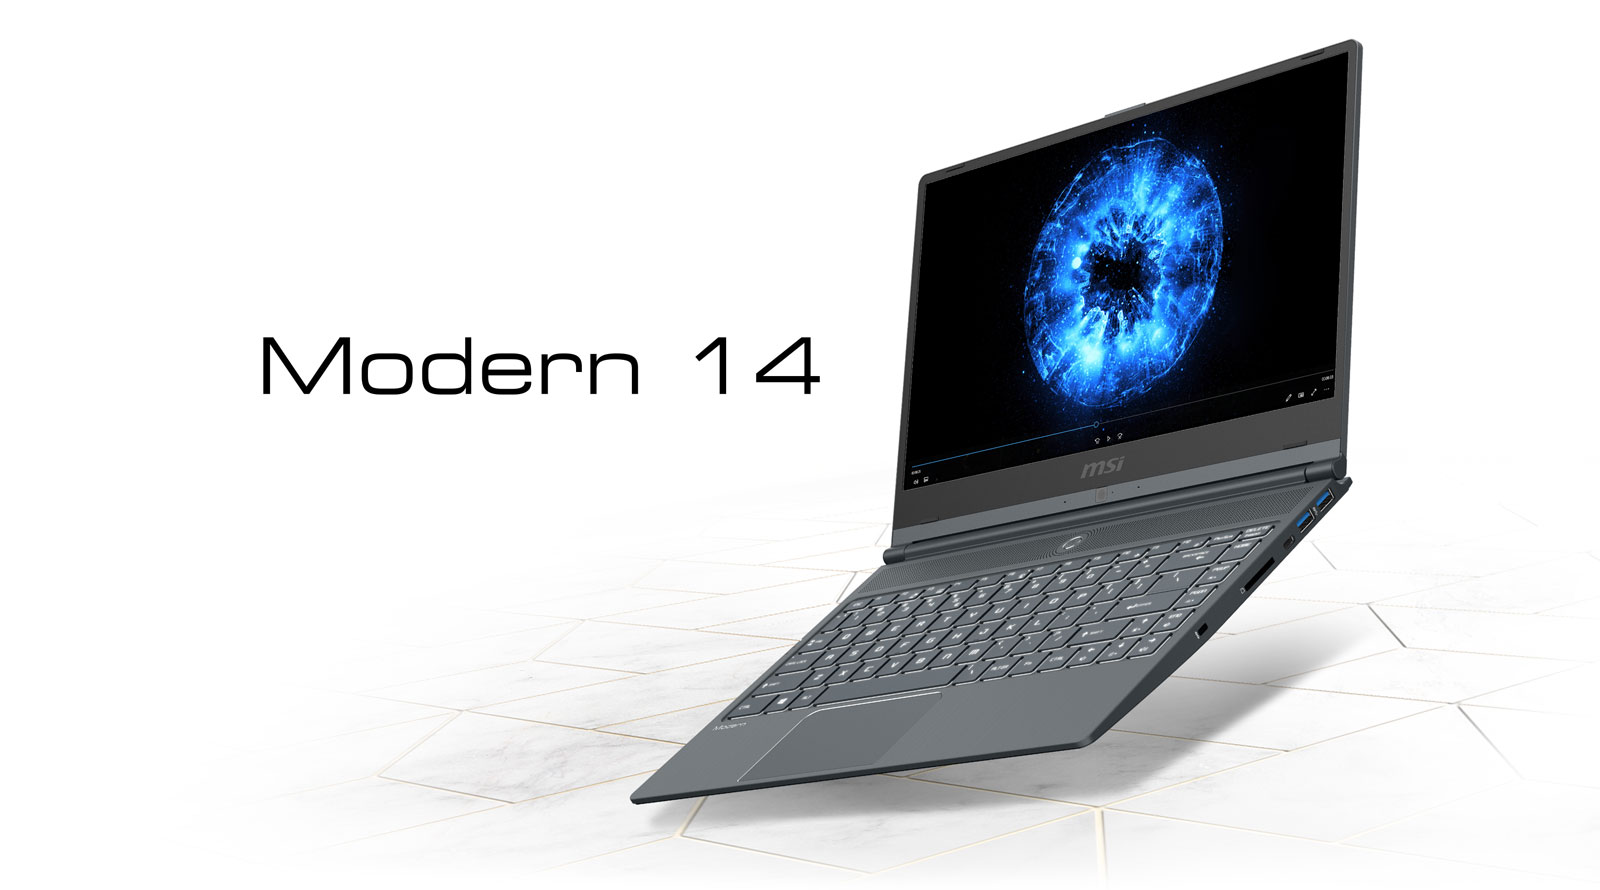 Modern 14 Laptop Widely Open and Angled to Left a Little, with Blue Aspects Video Playing on Its Screen. Text on Its Left Reads: Modern 14